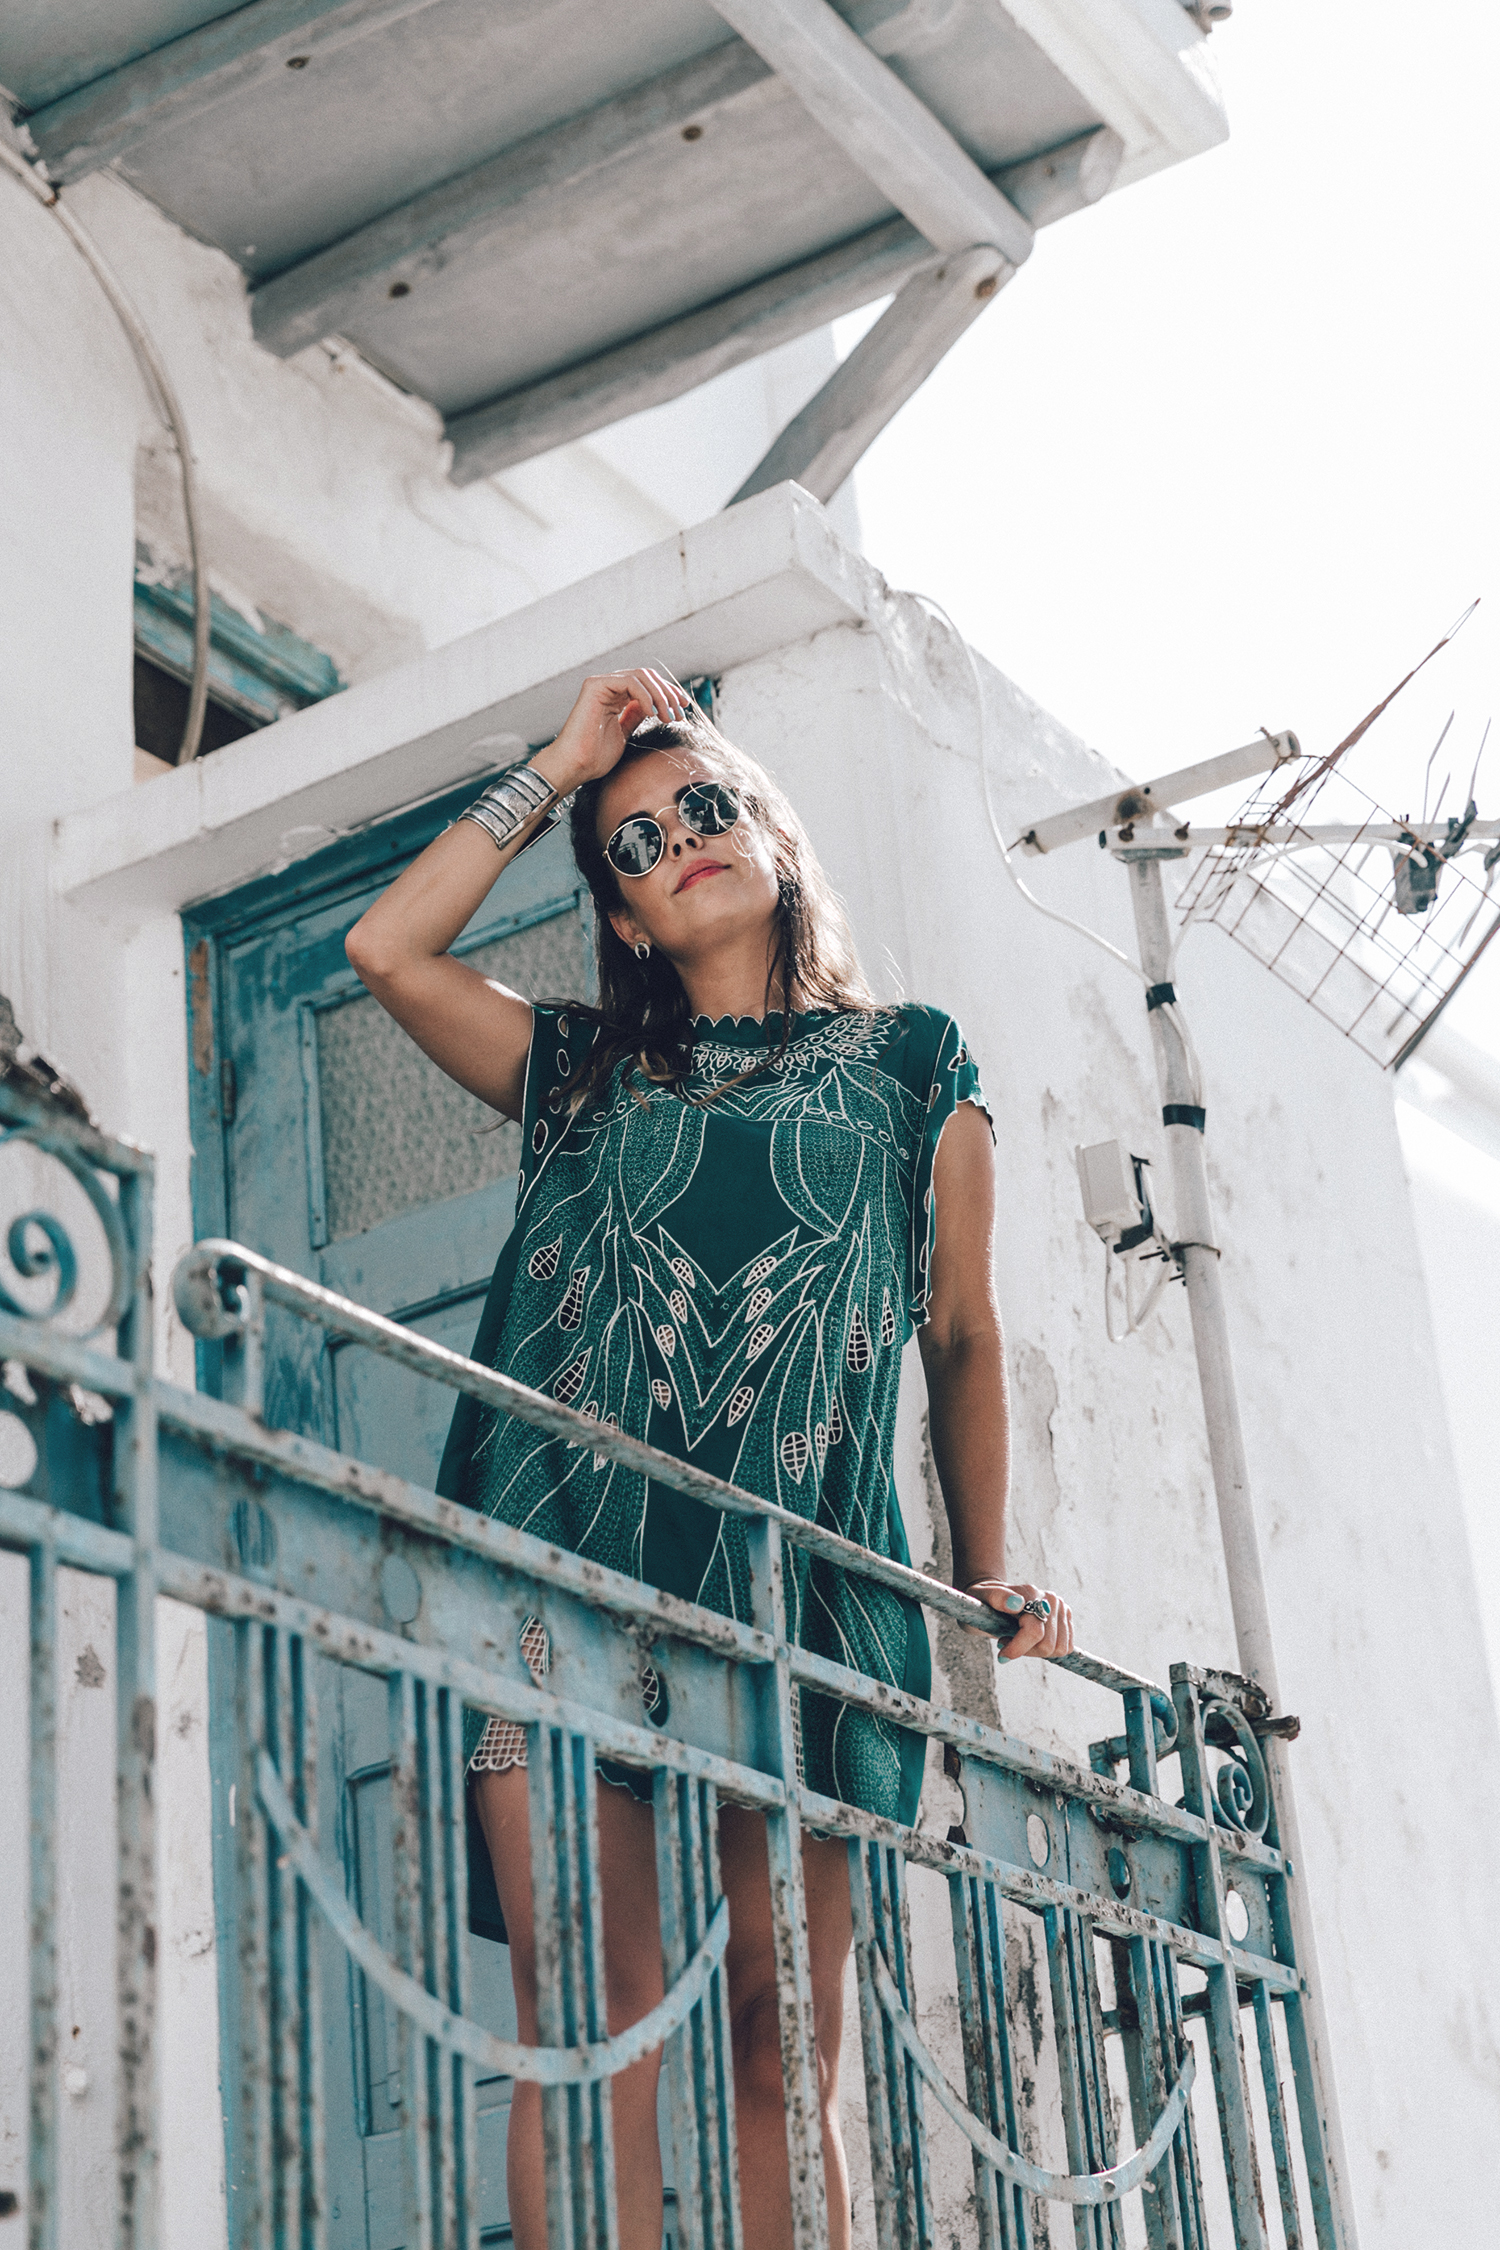 Tularosa_Dress-Soludos_Escapes-Soludos_Espadrilles-Sezane_Bag-Leather_Crossbody_Bag-Boho_Outfit-Look-Ray_Ban-Street_Style-Mykonos-Greece-Collage_Vintage-31